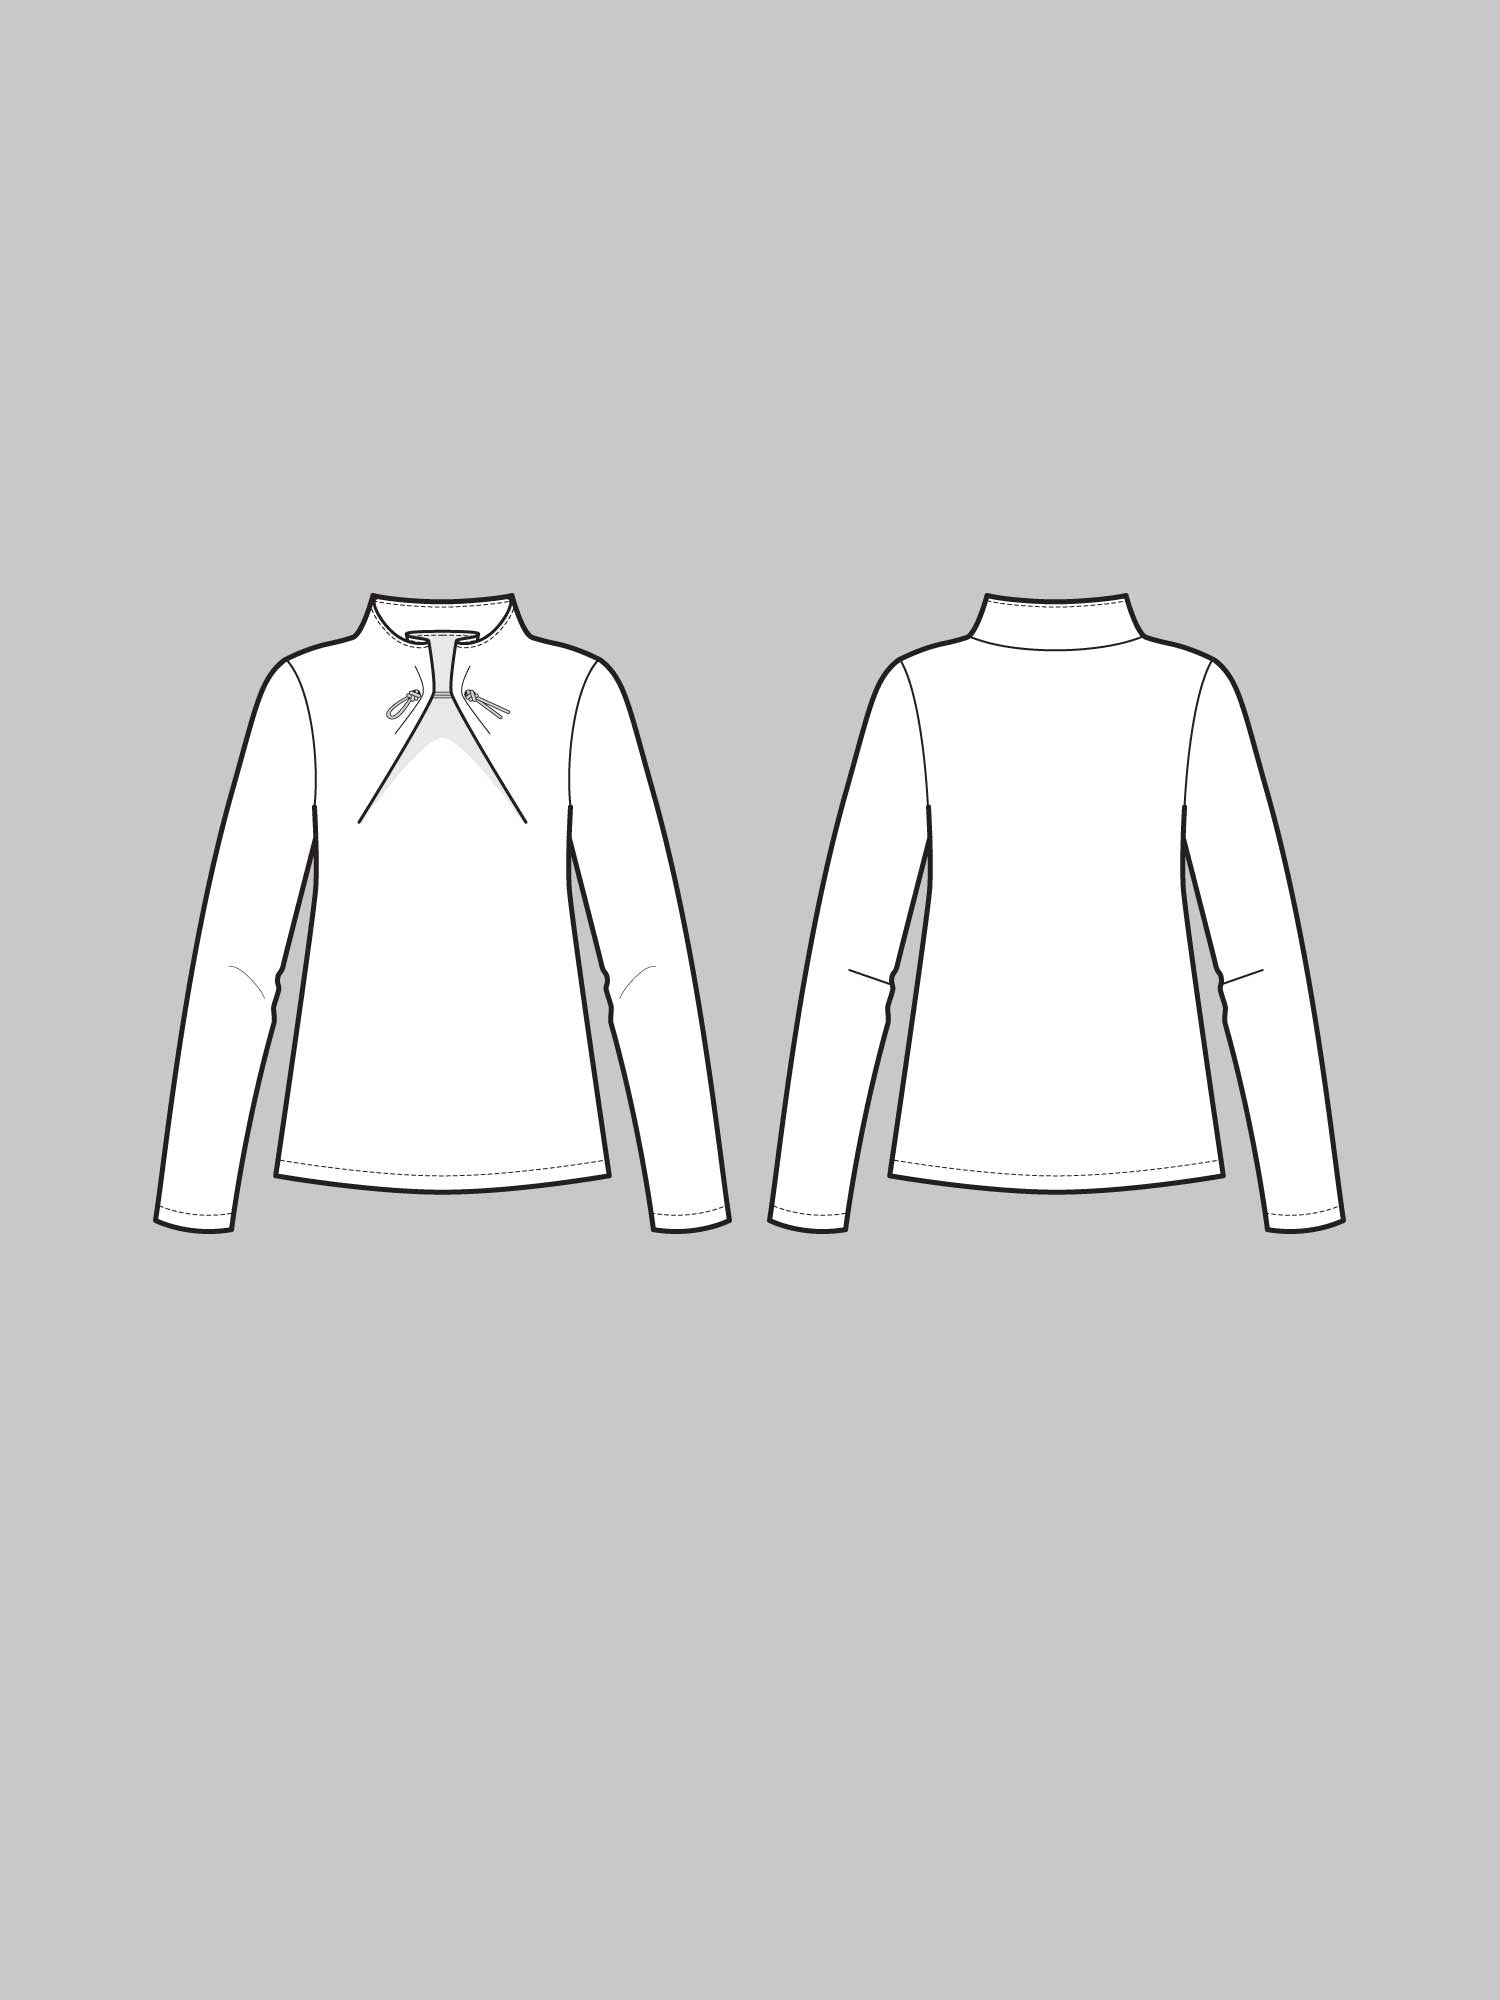 THE ASSEMBLY LINE • Elastic Tie Sweater Sewing Pattern – The ...